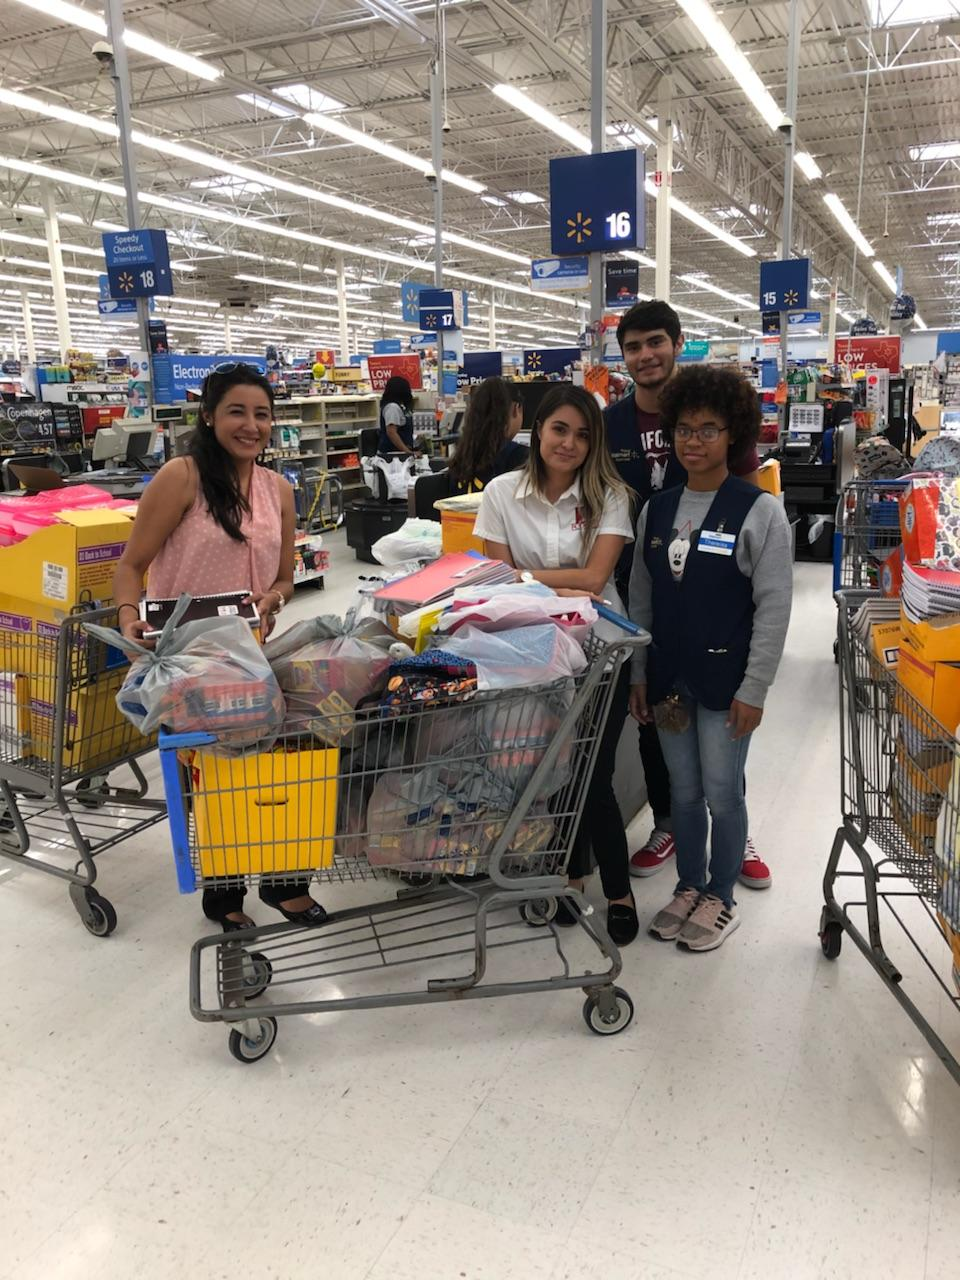 Rockstar Capital Prepares for Back to School Program: Basic Supplies Given to Students at all Rockstar Communities